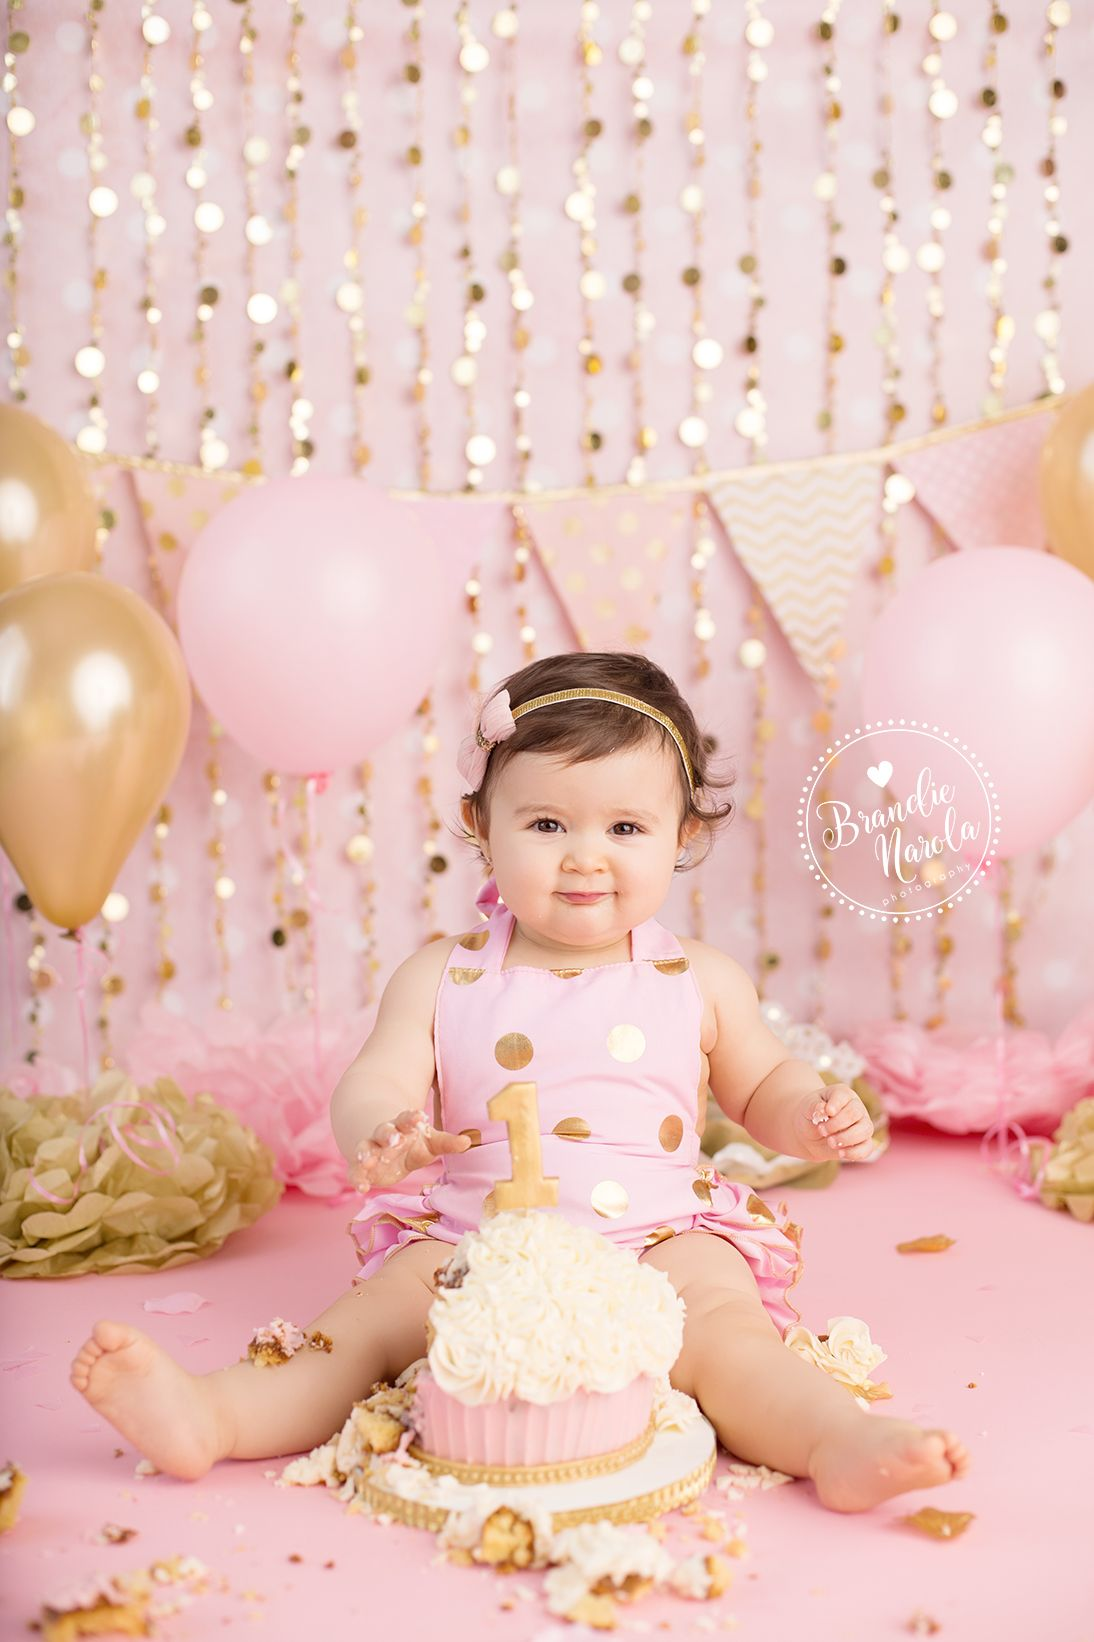 Remarkable Themed Baby Cake Smash Photos By Brandie Narola Photography Personalised Birthday Cards Veneteletsinfo